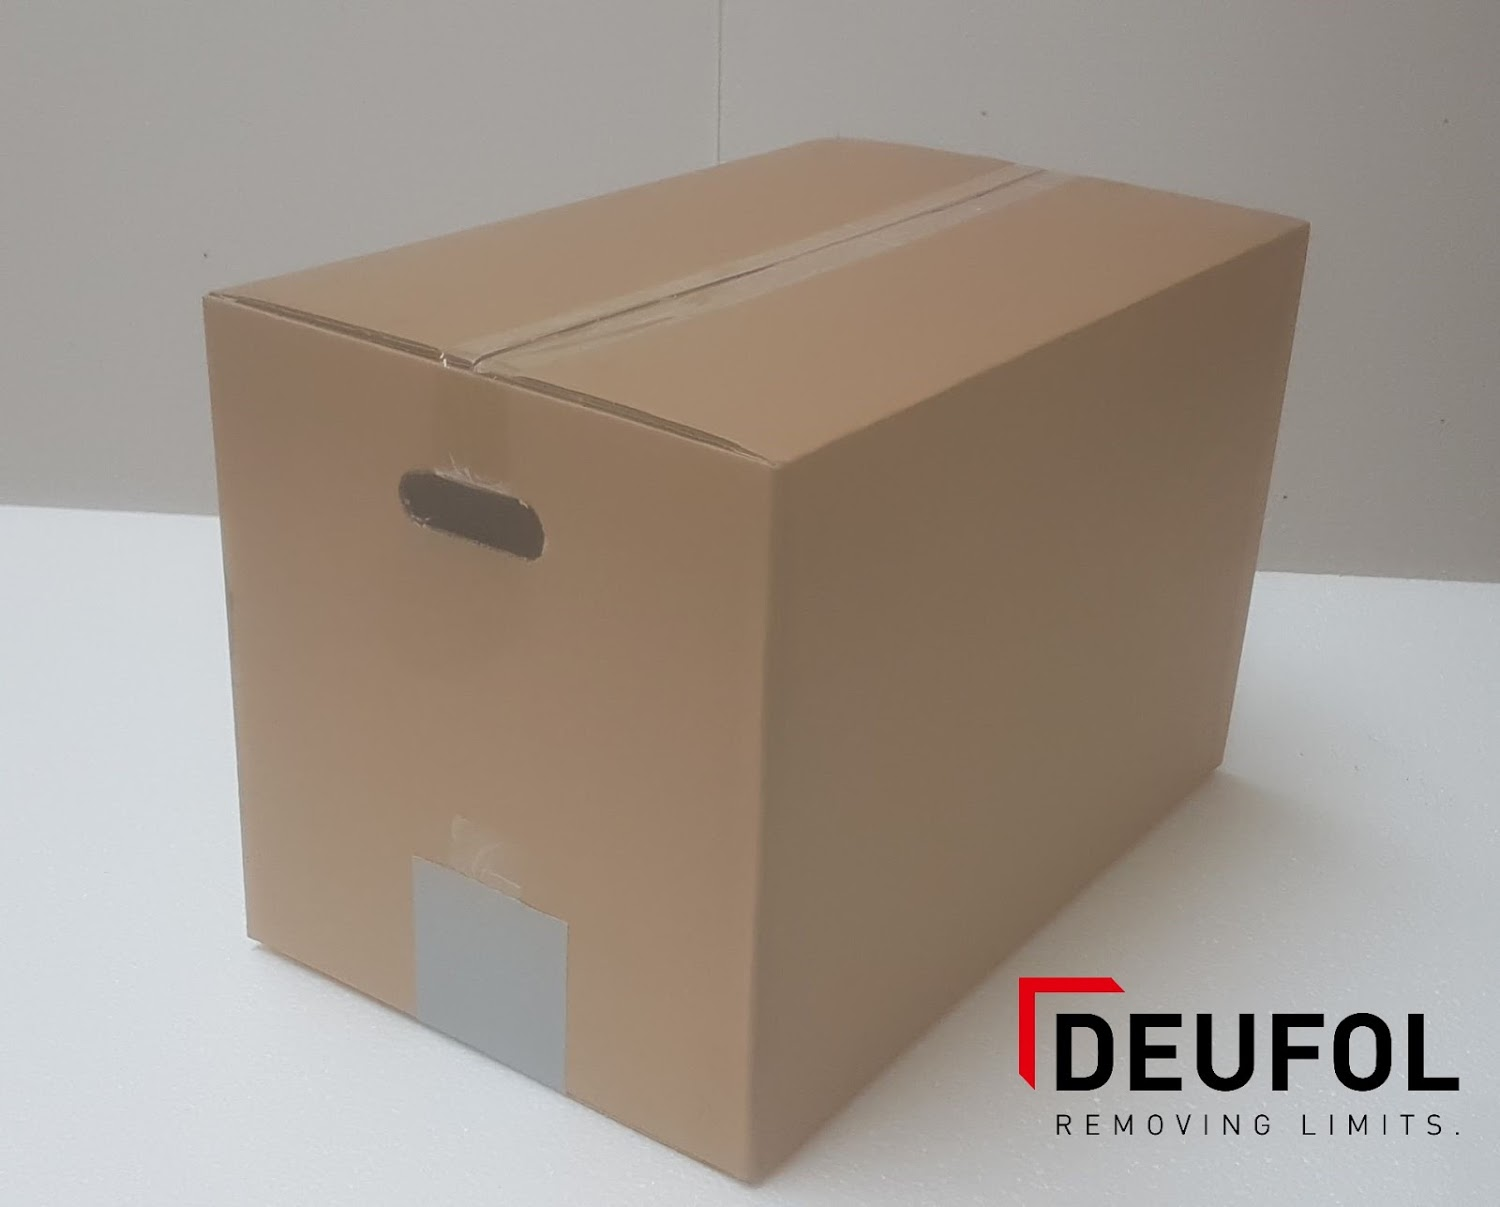 Cardboard moving box with handles 53 * 33 * 35 cm